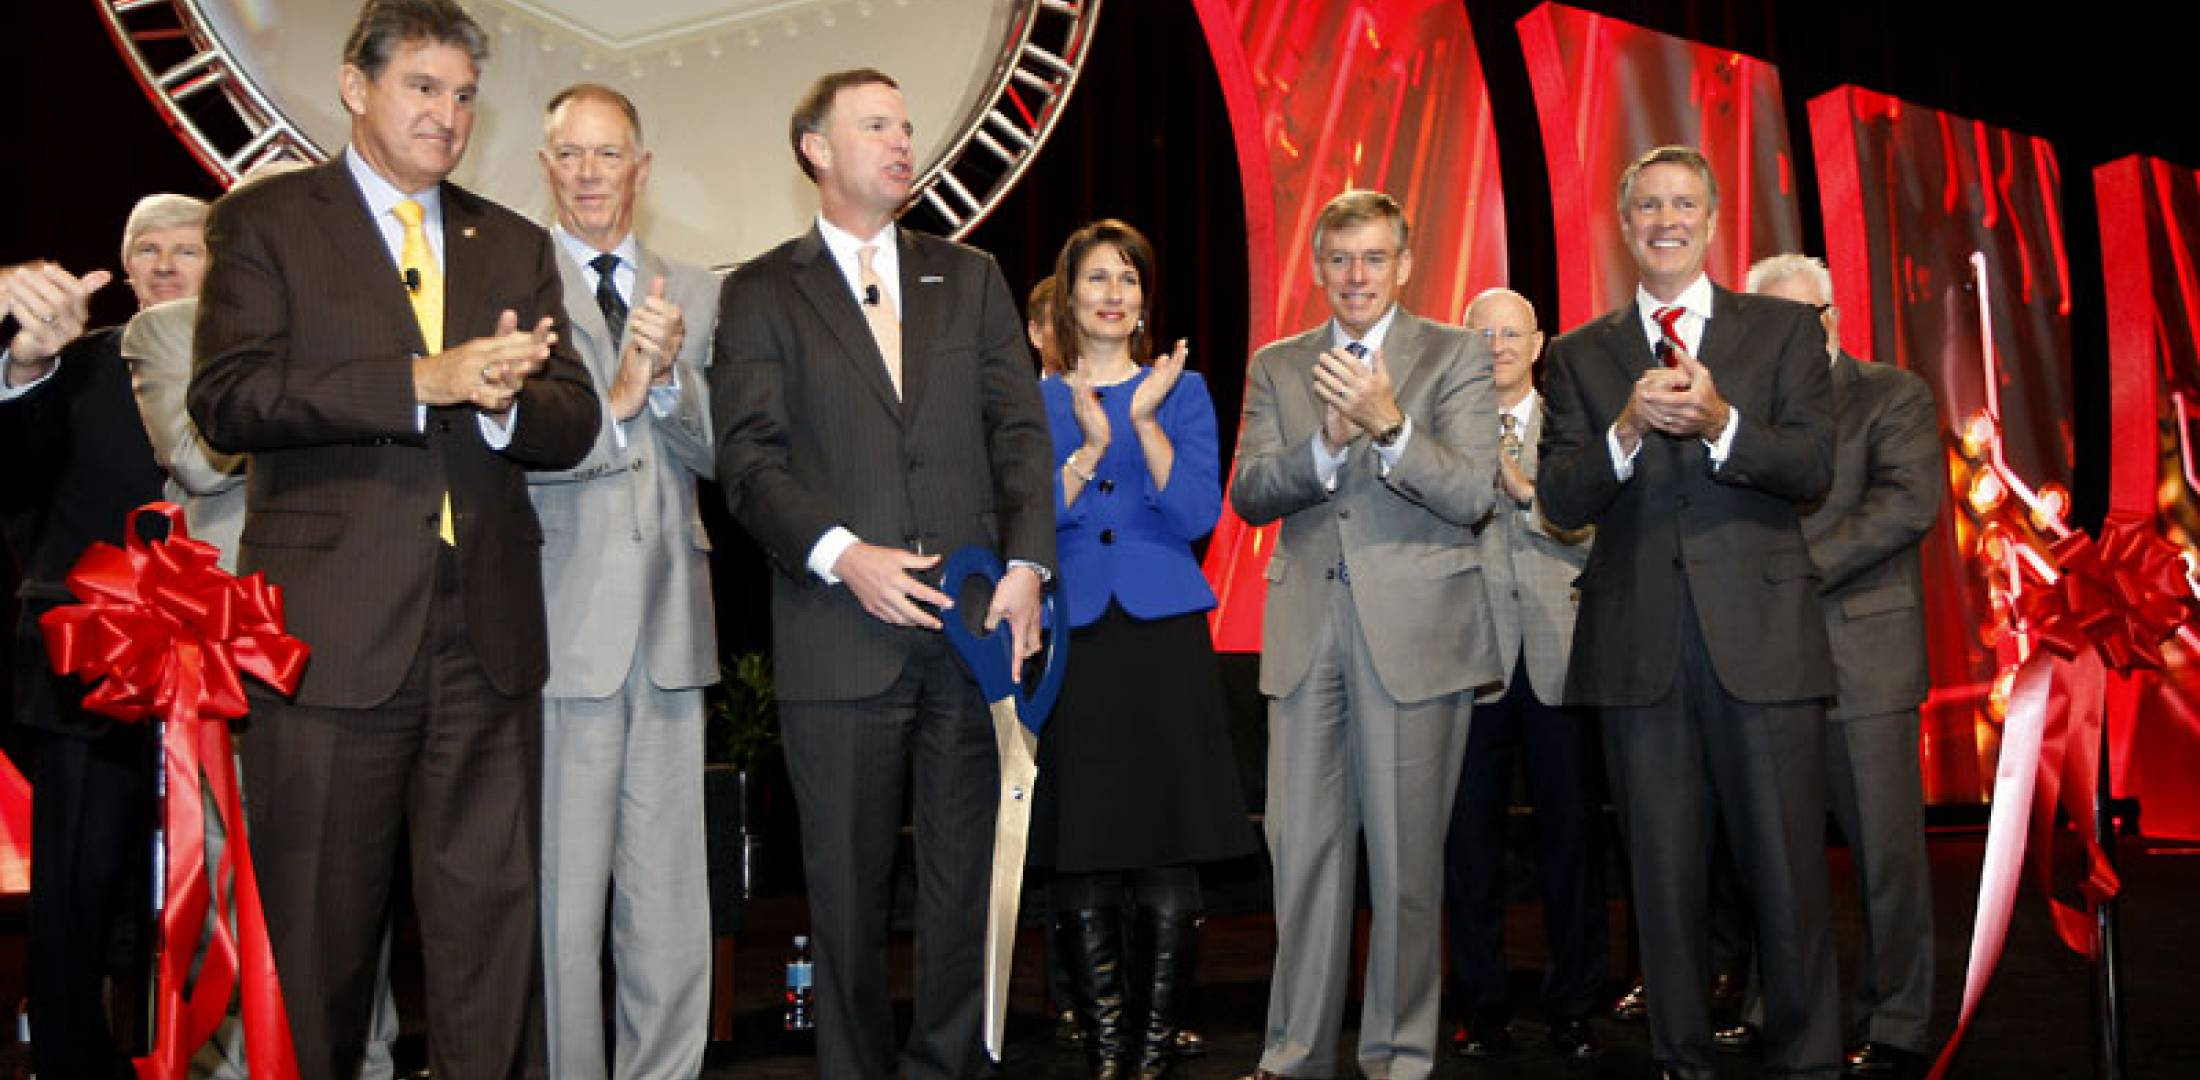 NBAA 2011 opening general session ribbon cutting ceremony.